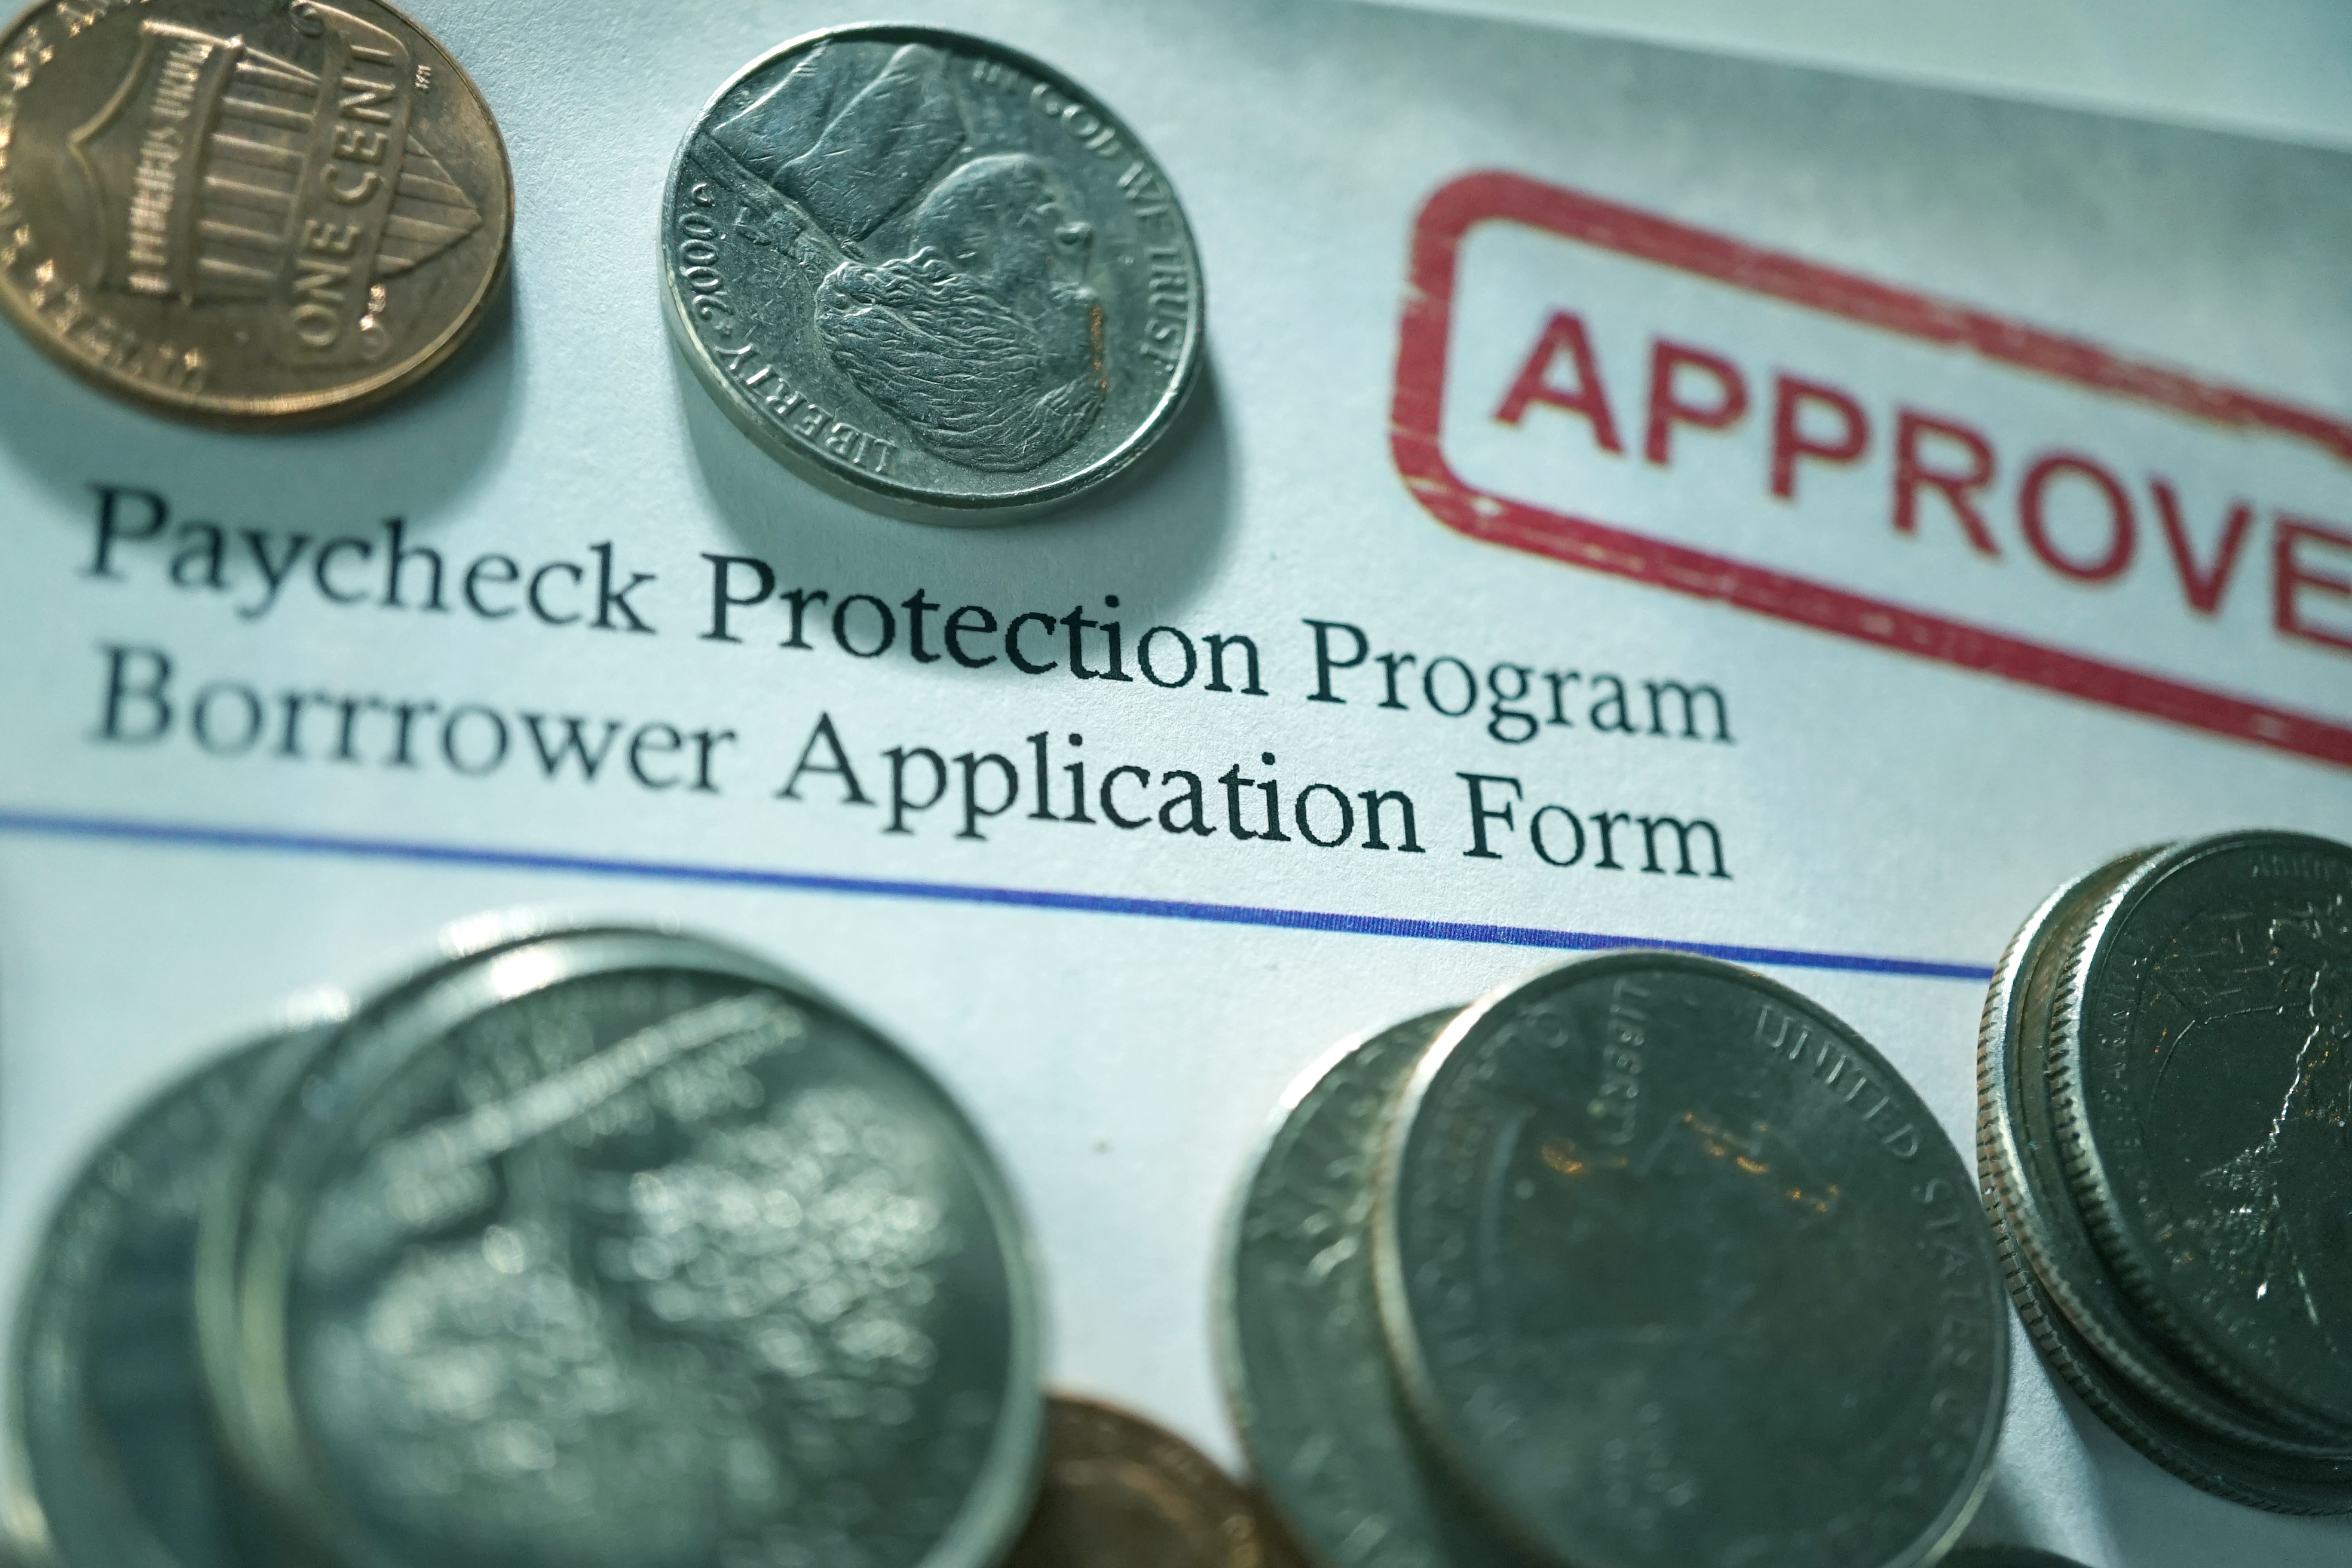 Blackhawk Financial Advisor Is Offering Comprehensive Guidelines To Help Business Owners Get Their Paycheck Protection Program Loan Approved